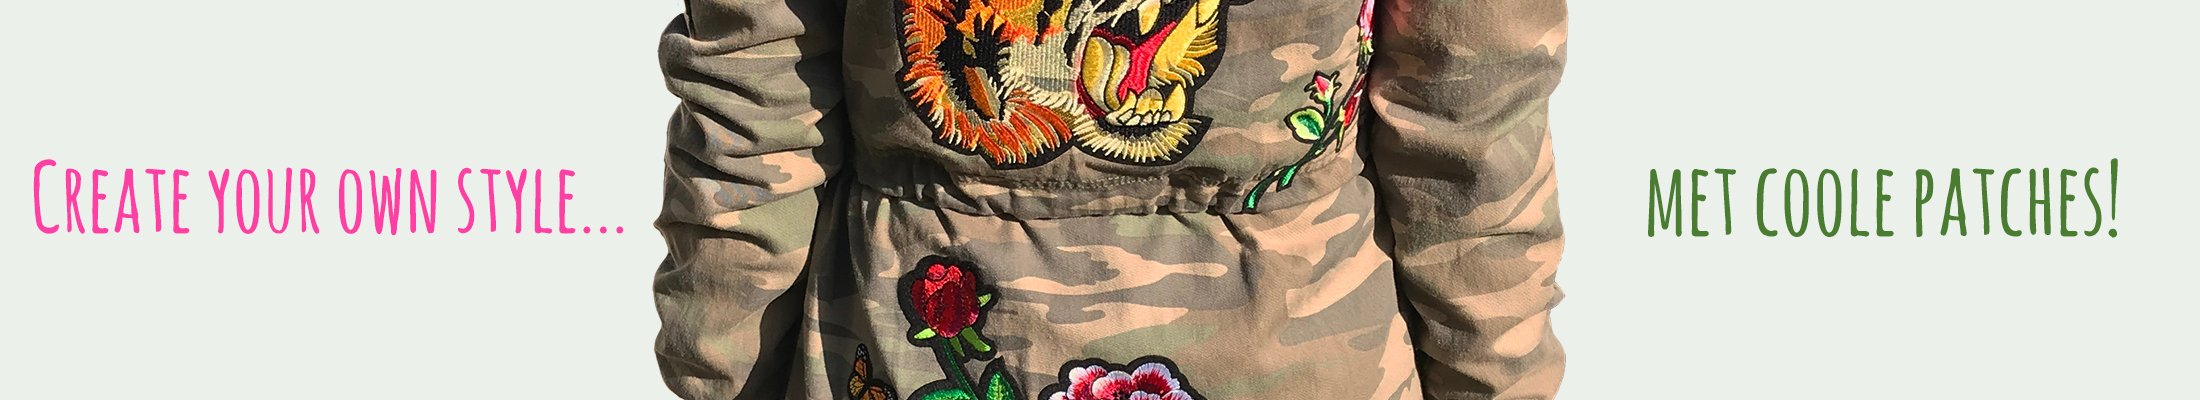 Patches army jas banner